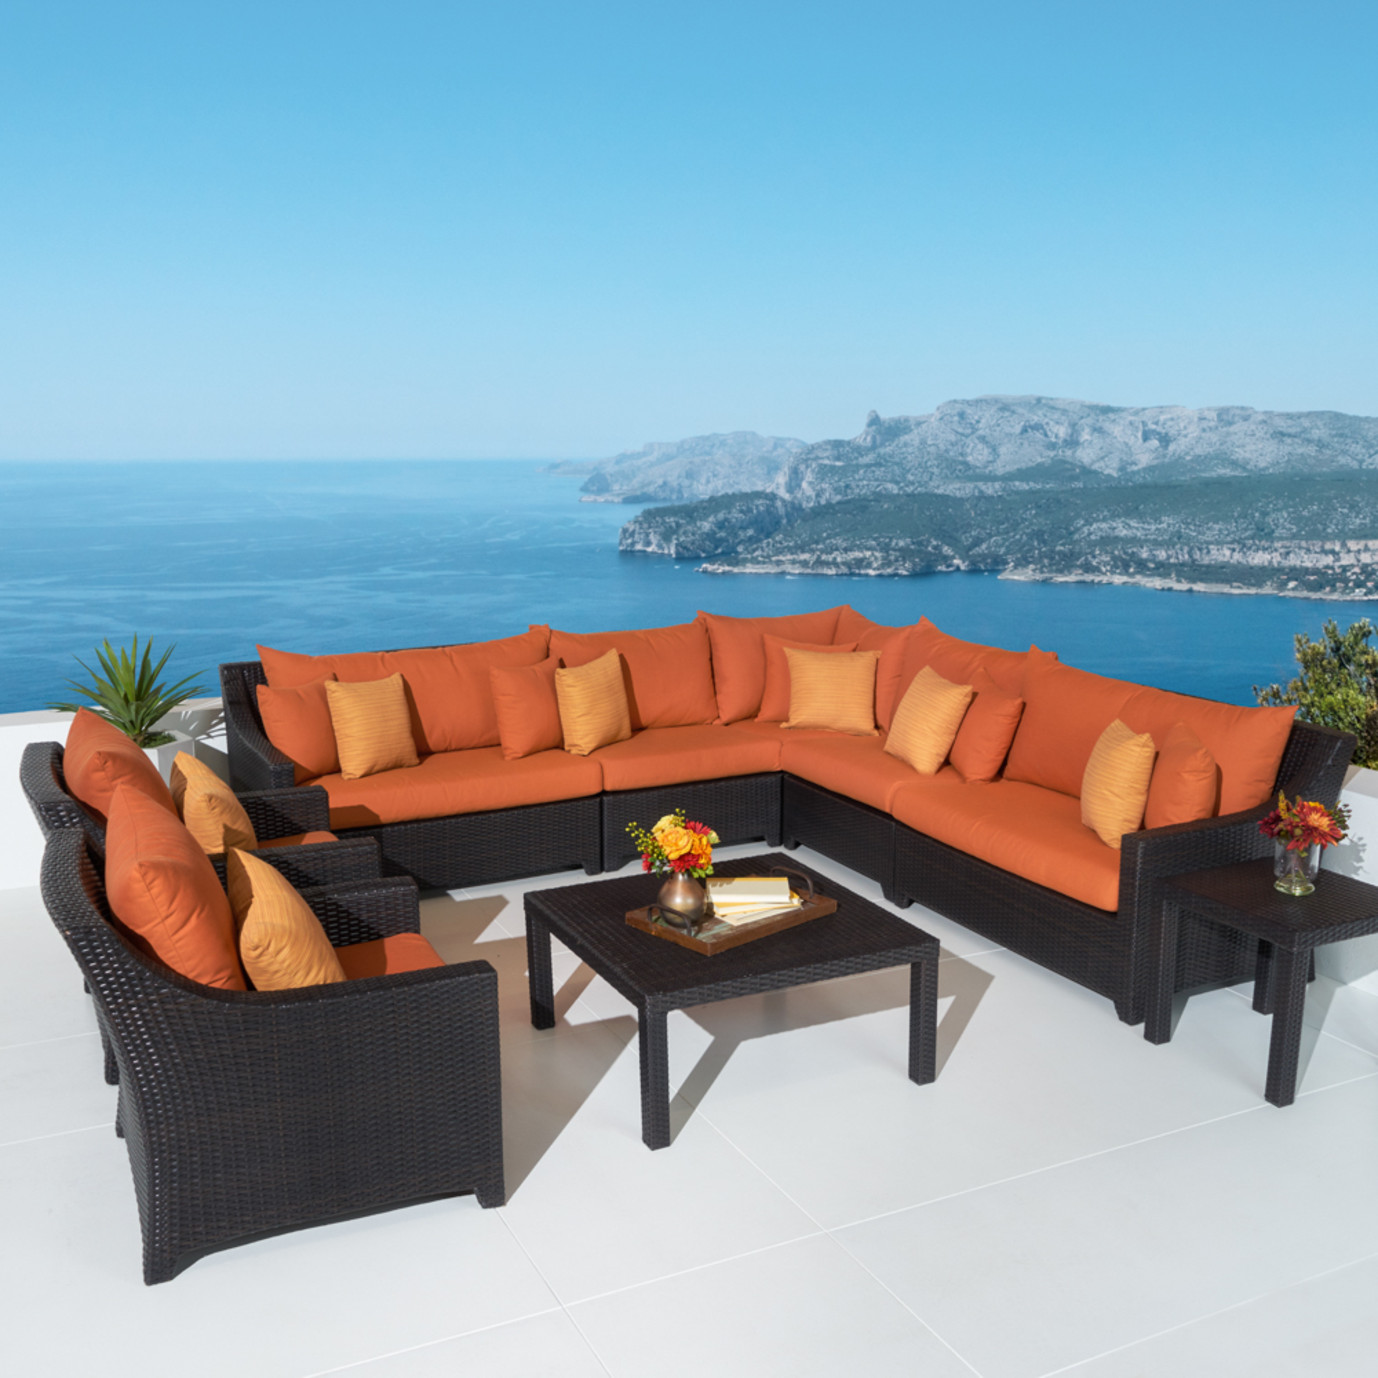 Deco™ 9 Piece Sectional and Club Set - Tikka Orange